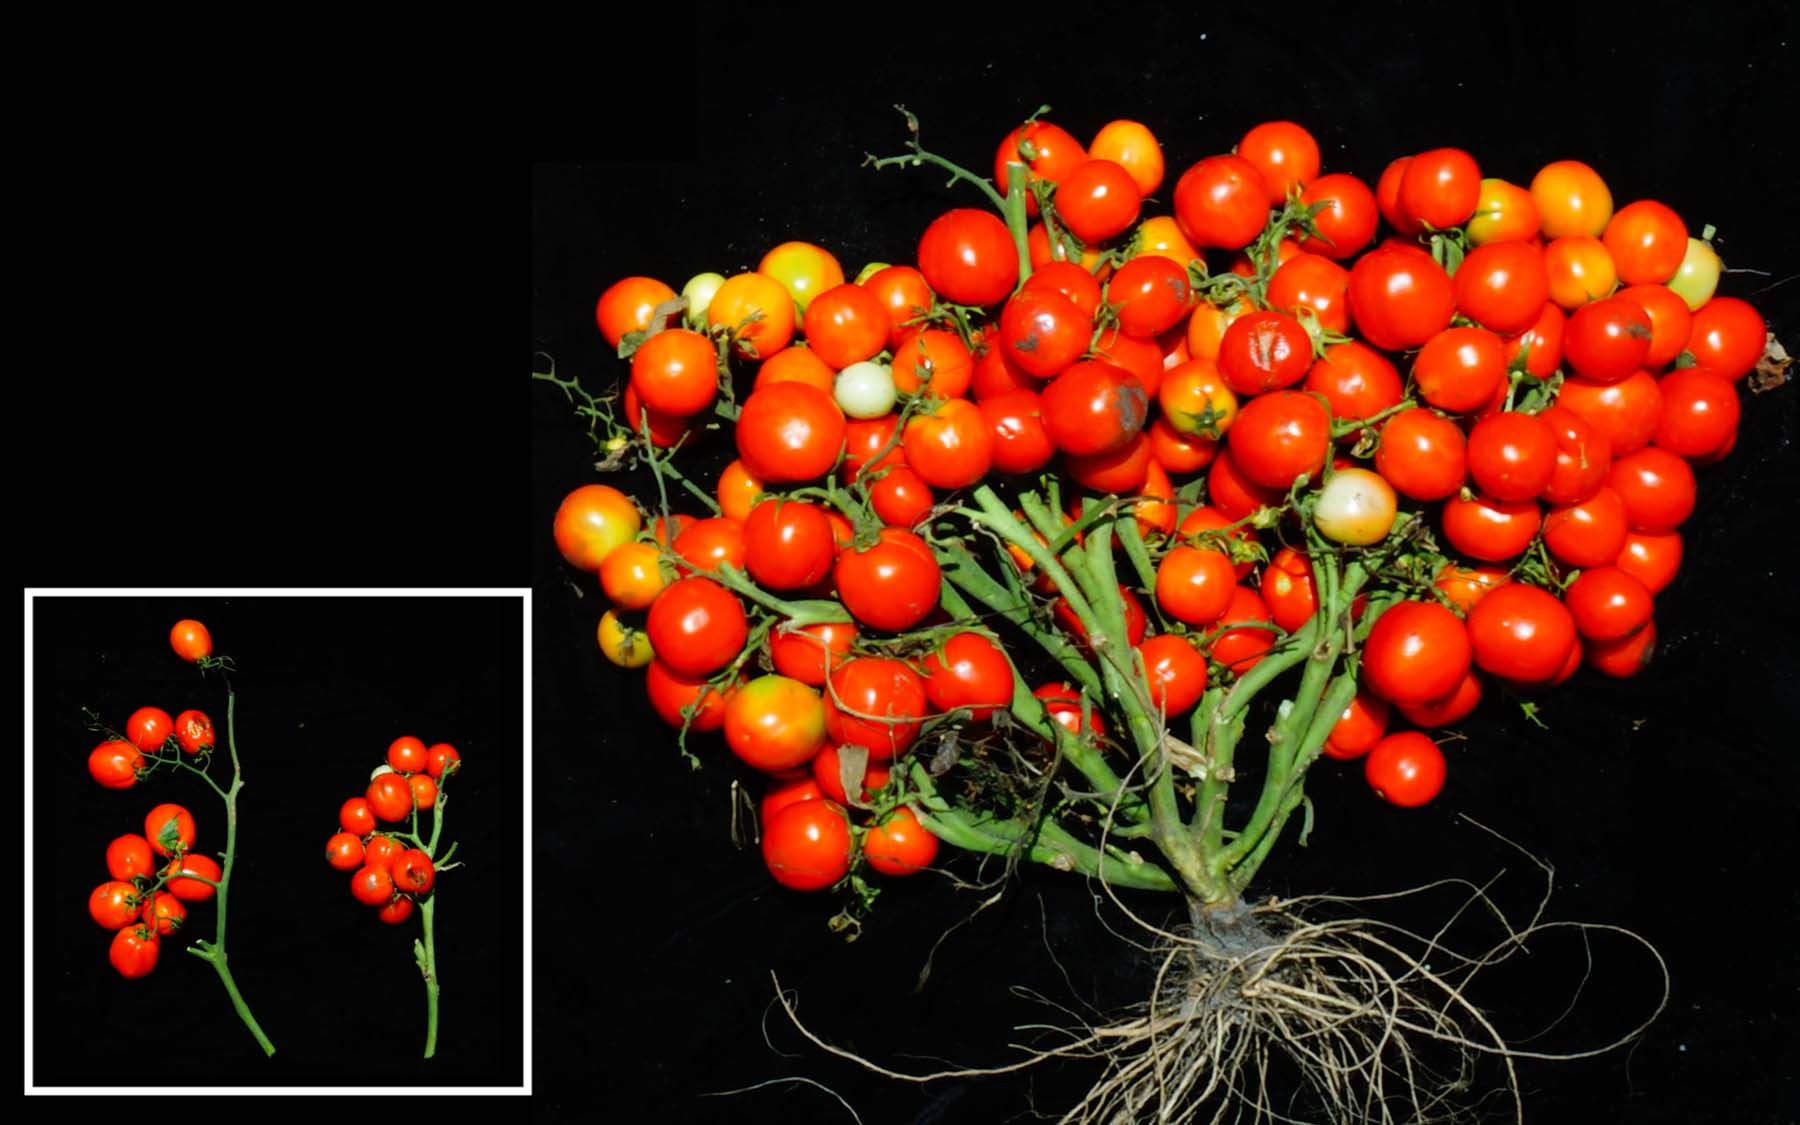 Genetically engineered tomato shrub could be a boon for urban farming